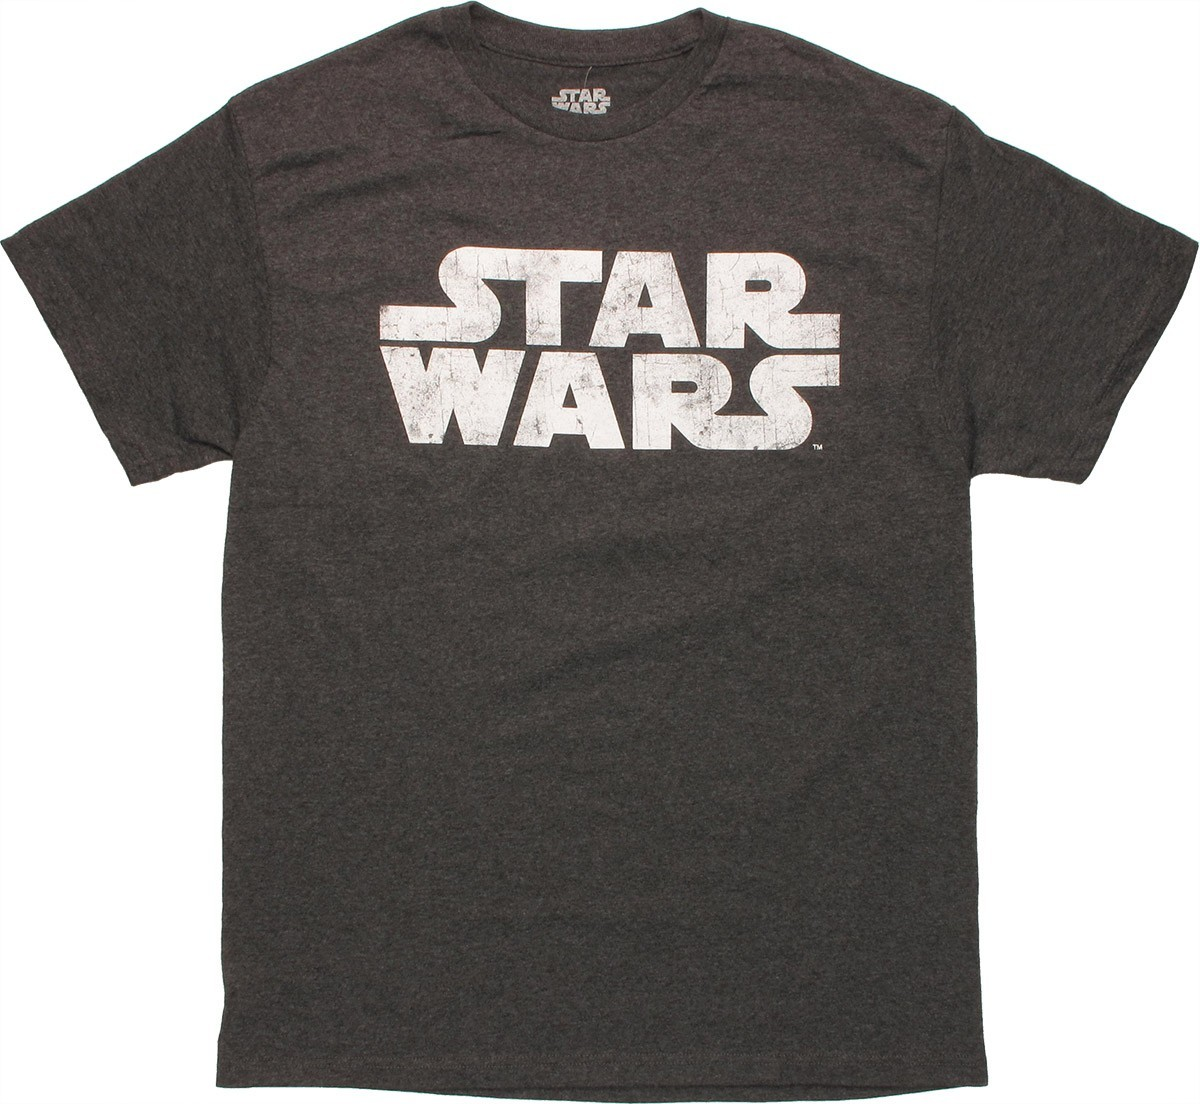 Star Wars Vintage T Shirt 57